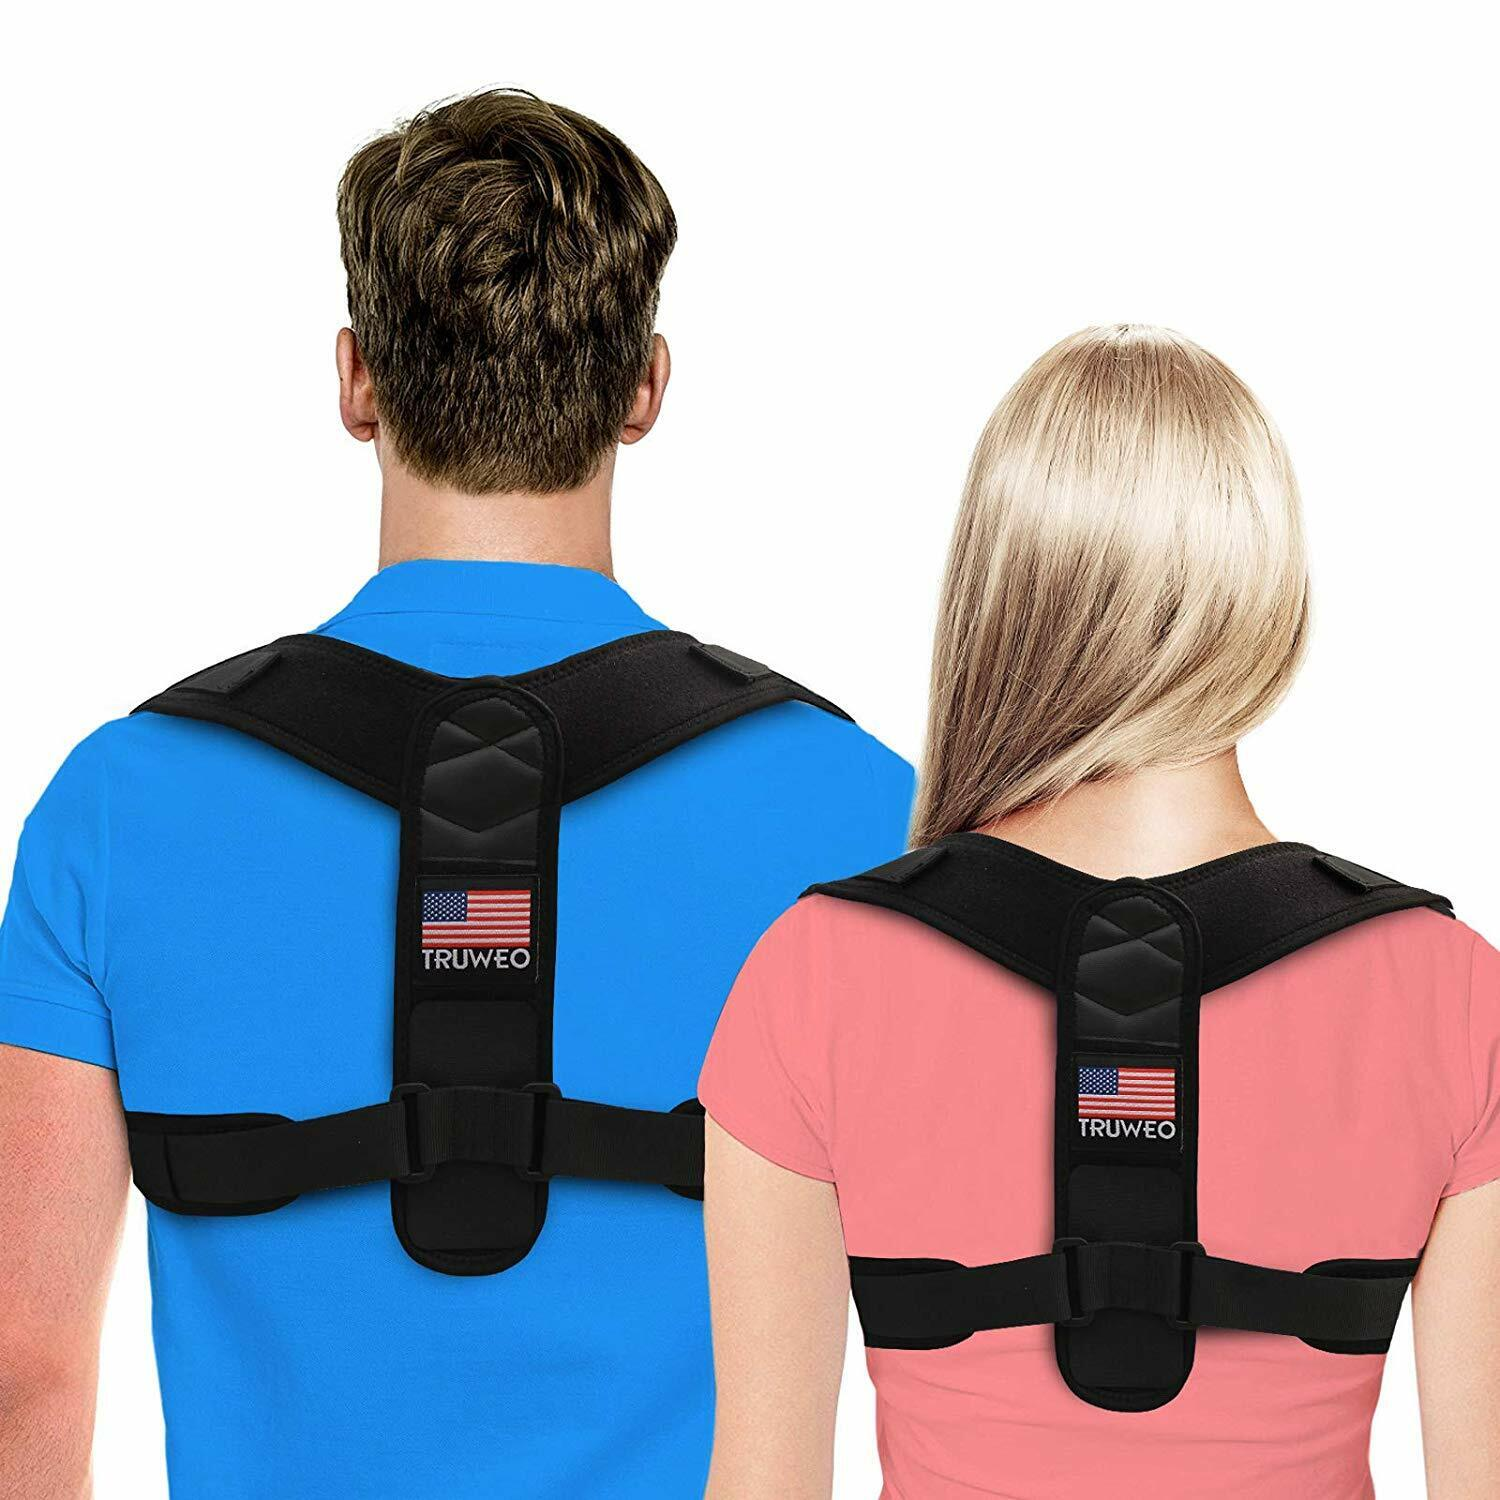 Truweo Posture Corrector For Men And Women-USA Patented Desi